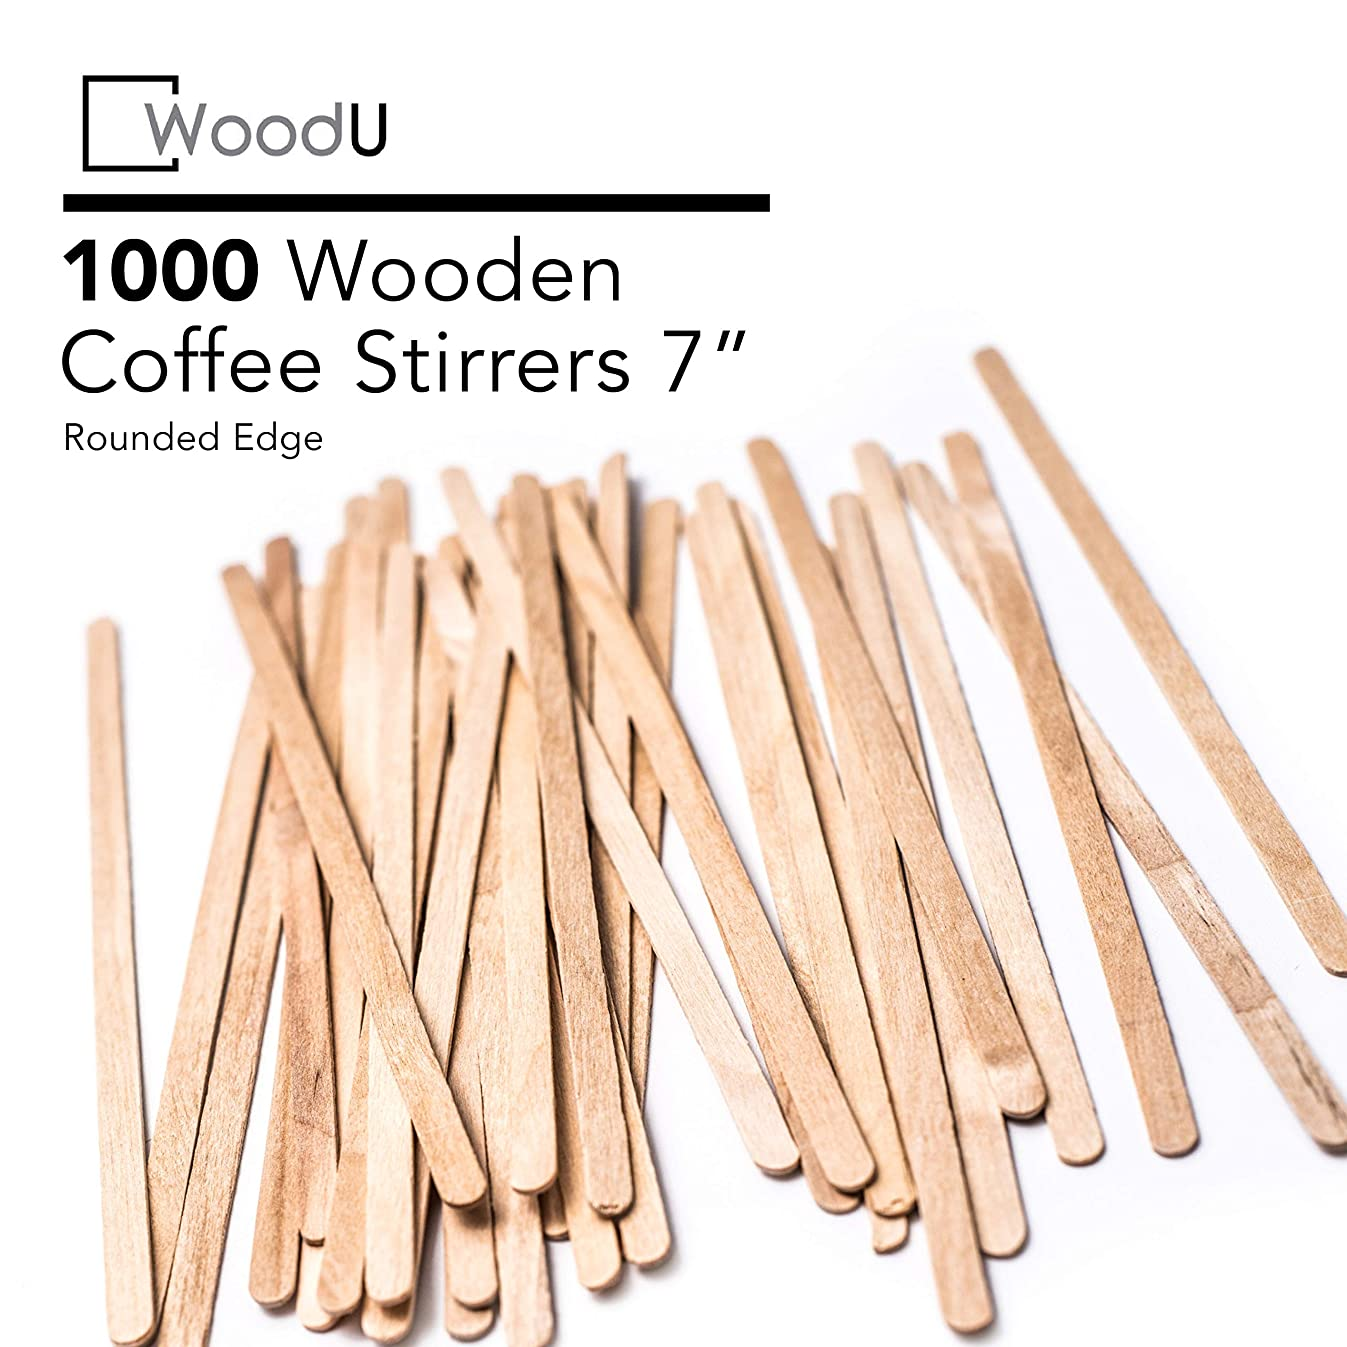 Coffee Stir Sticks Round End, Eco Friendly Coffee Stirrers Dark Wood for Hot Drinks (7 inches)